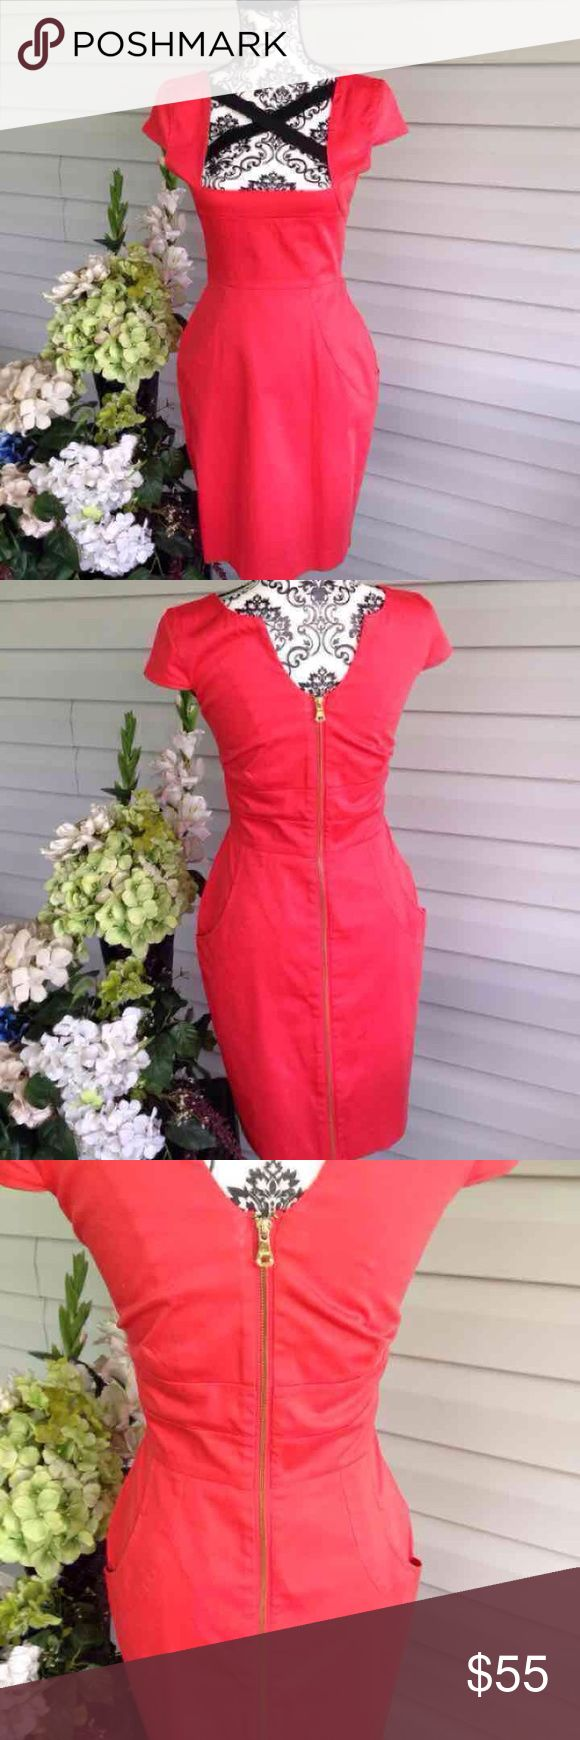 Guess Fire Engine Red Cross Over Back Zipper Dress Guess. Zip up front. Cross cross straps in back. Pockets in front. Knee-midi length (depending on your height) high end quality. No known flaws. Red and black. Free gift. Size 4 Guess Dresses Midi